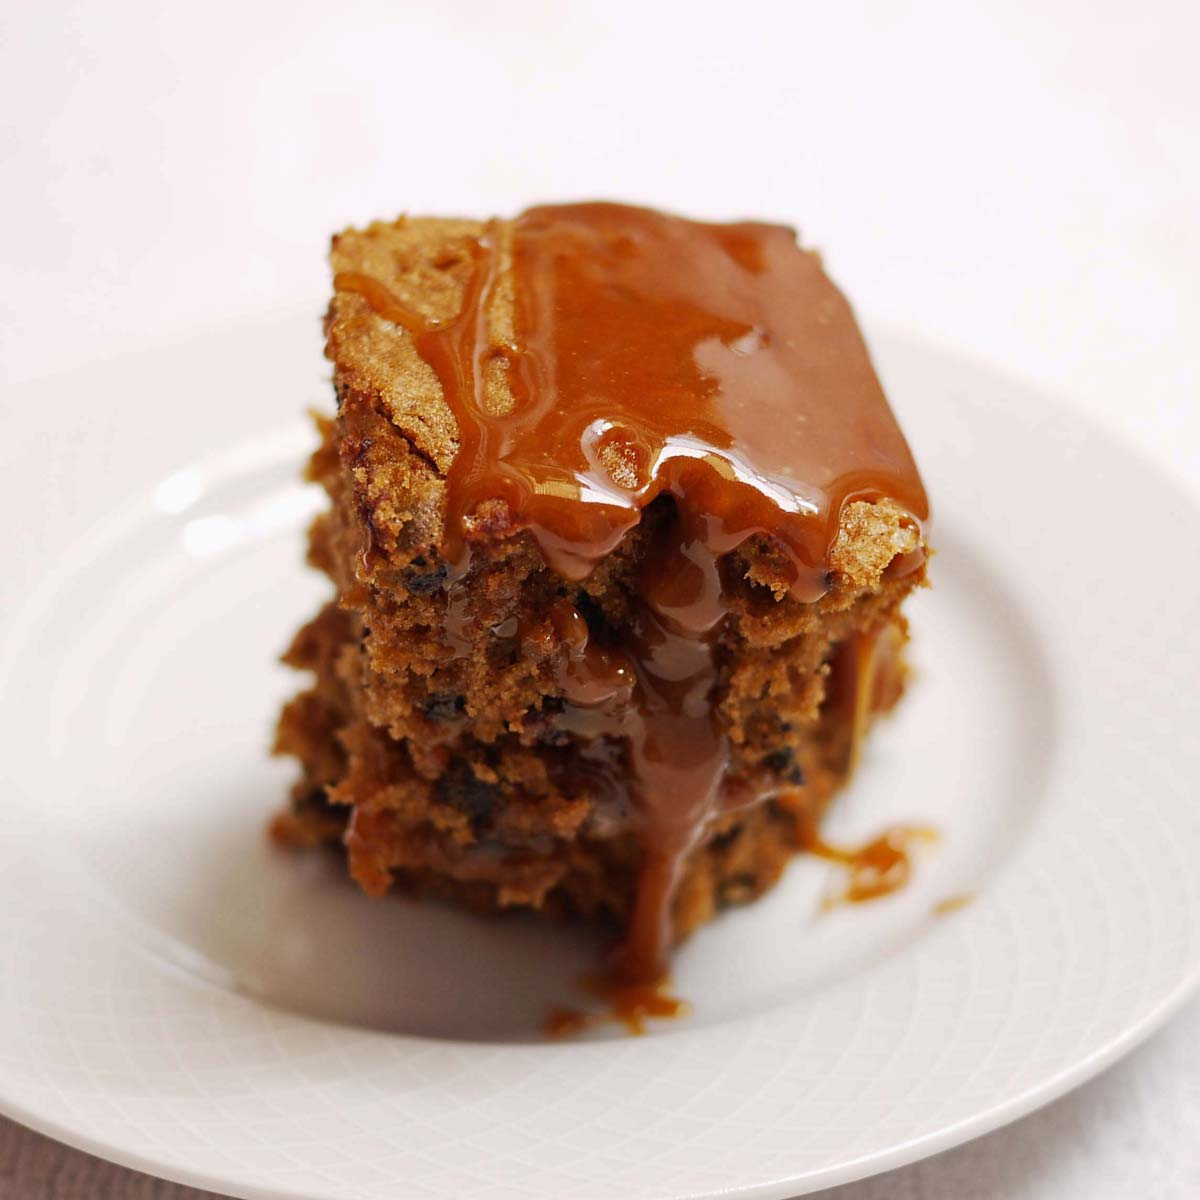 38-chocolate-chip-cake-with-caramel-glaze-2